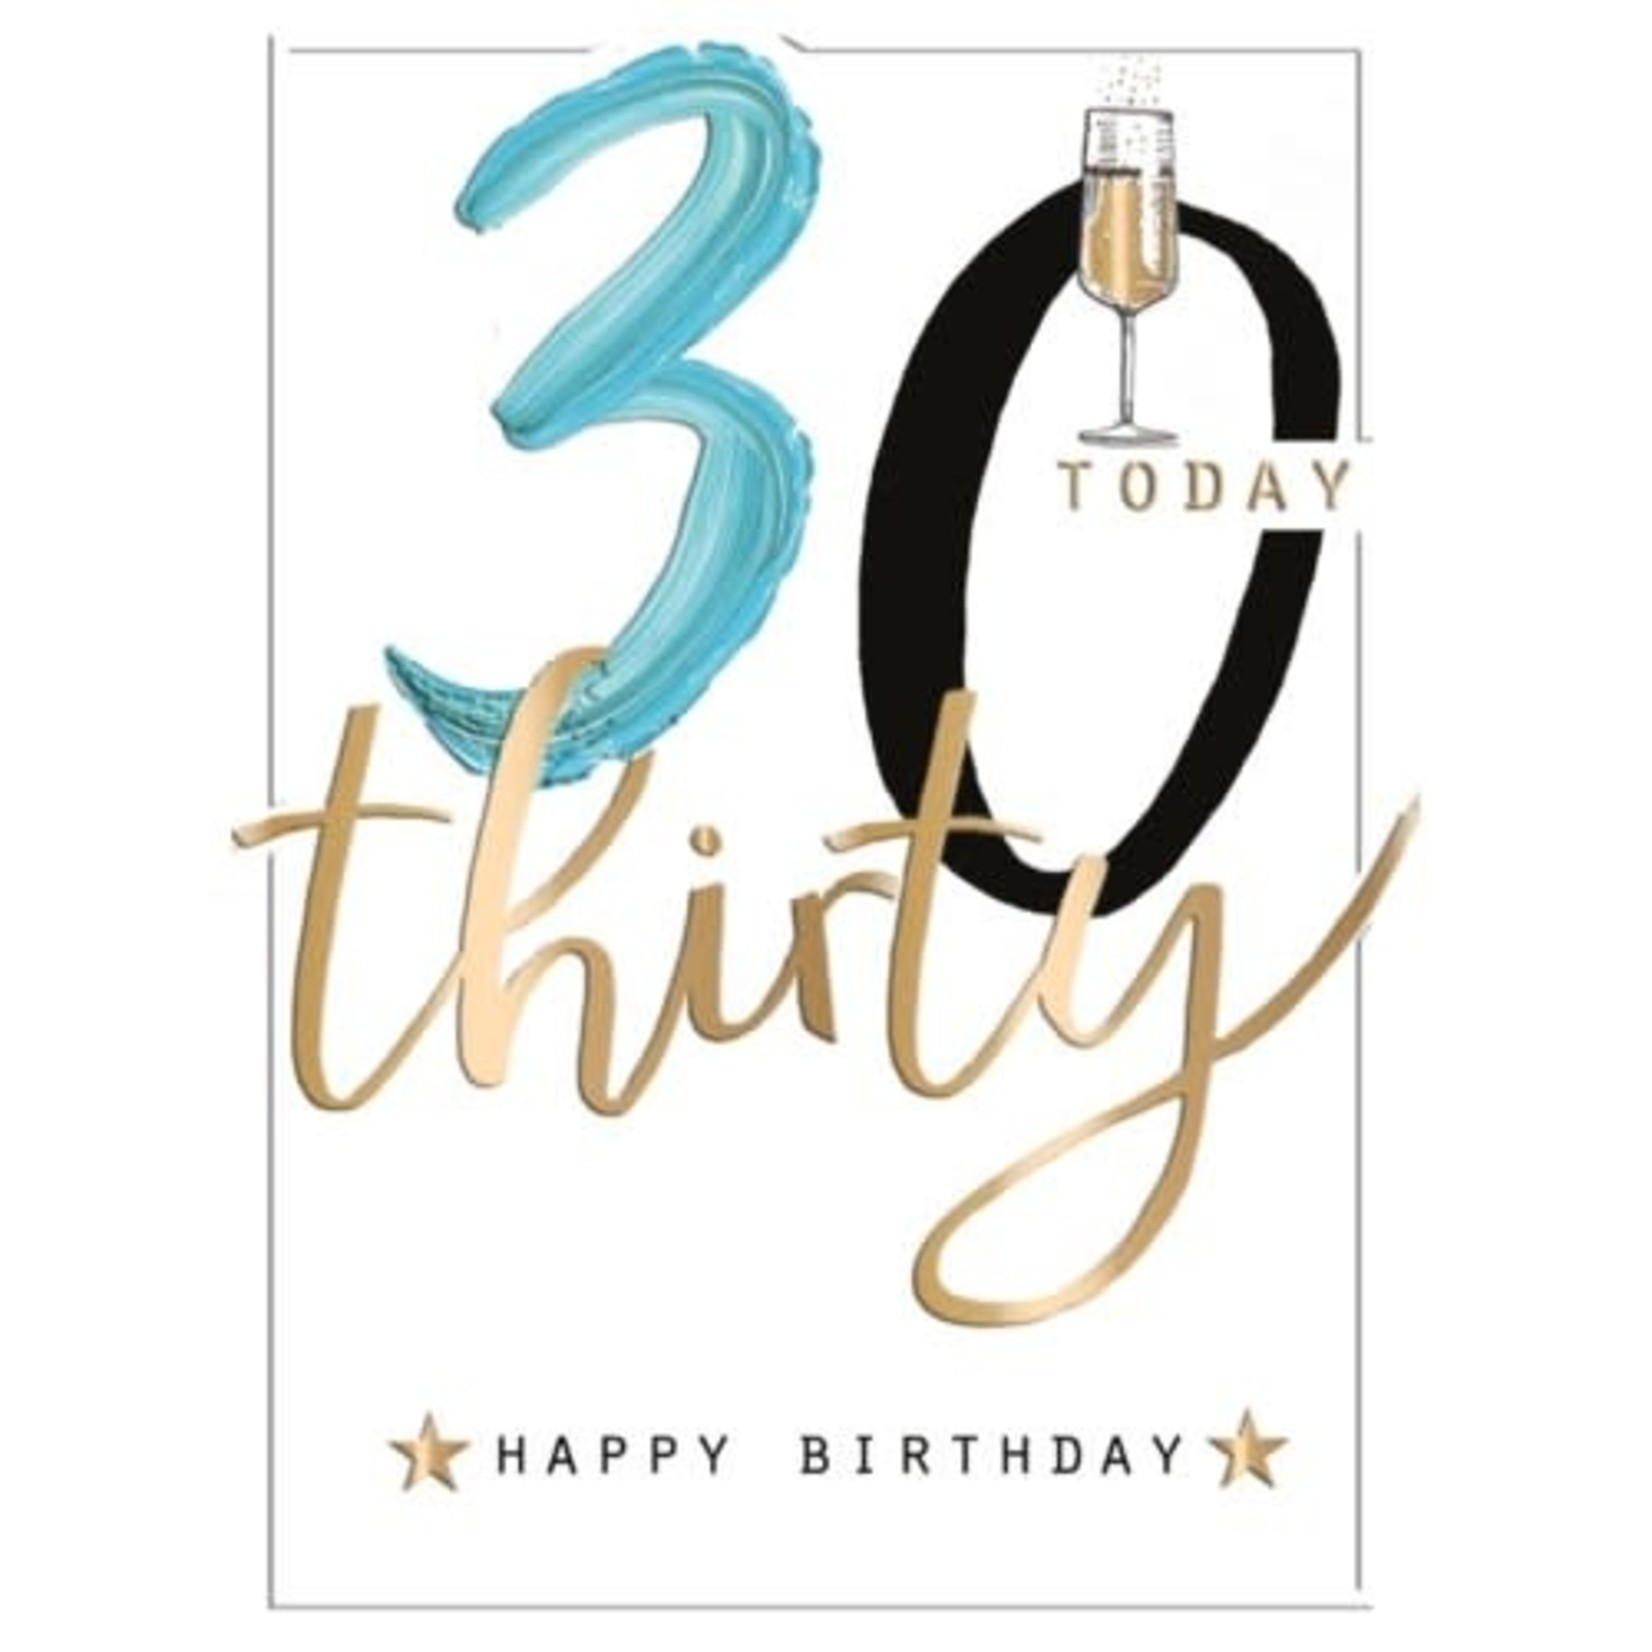 30 TODAY CARD